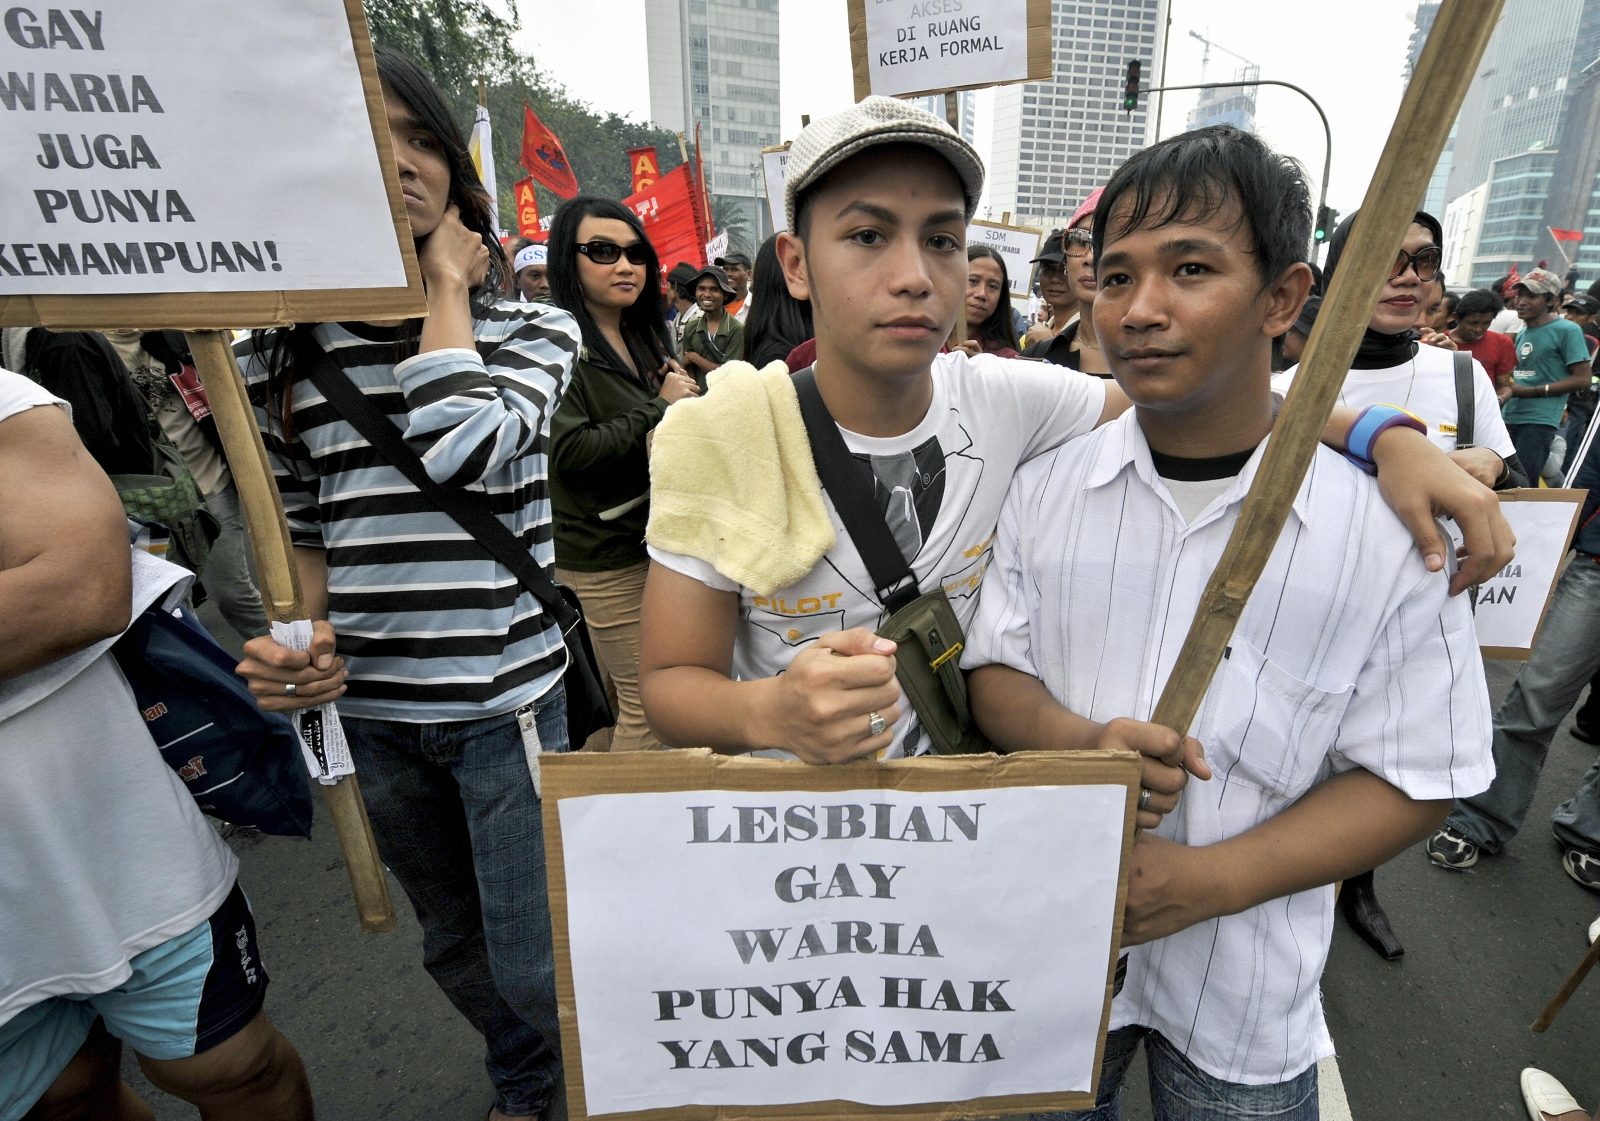 Homosexuality in Indonesia